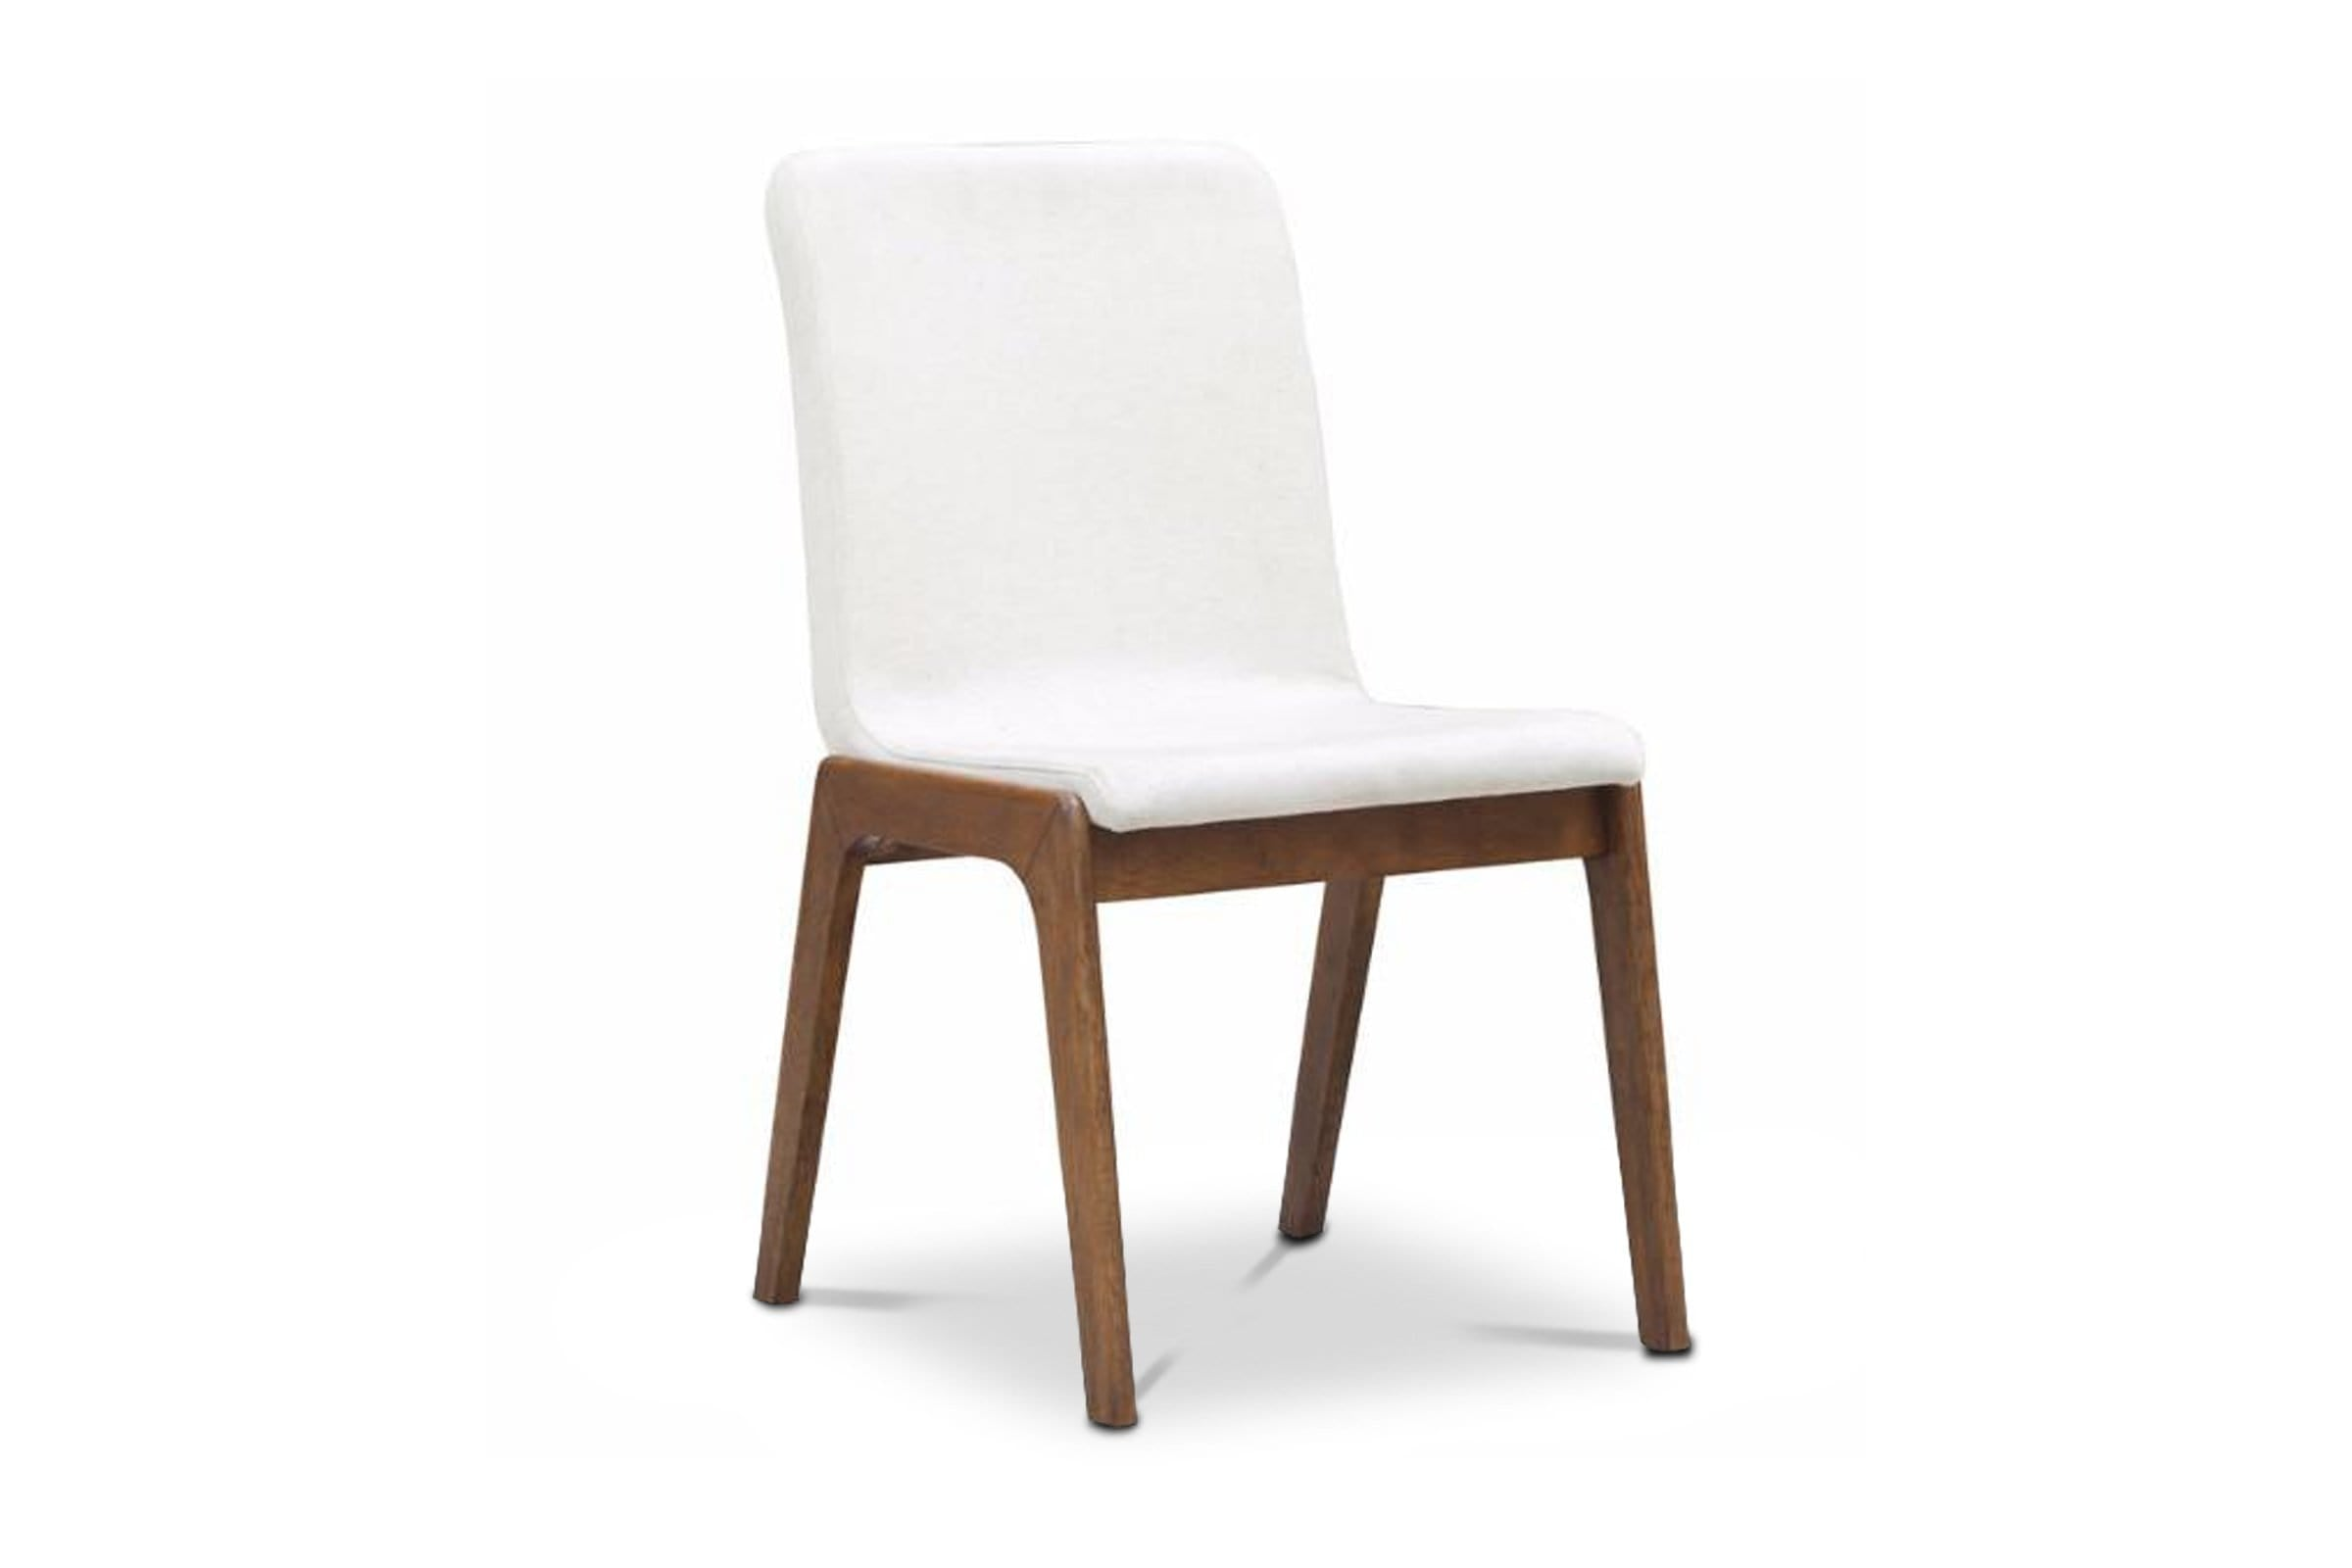 Aiken Dining Chair CREAM - SET OF 2